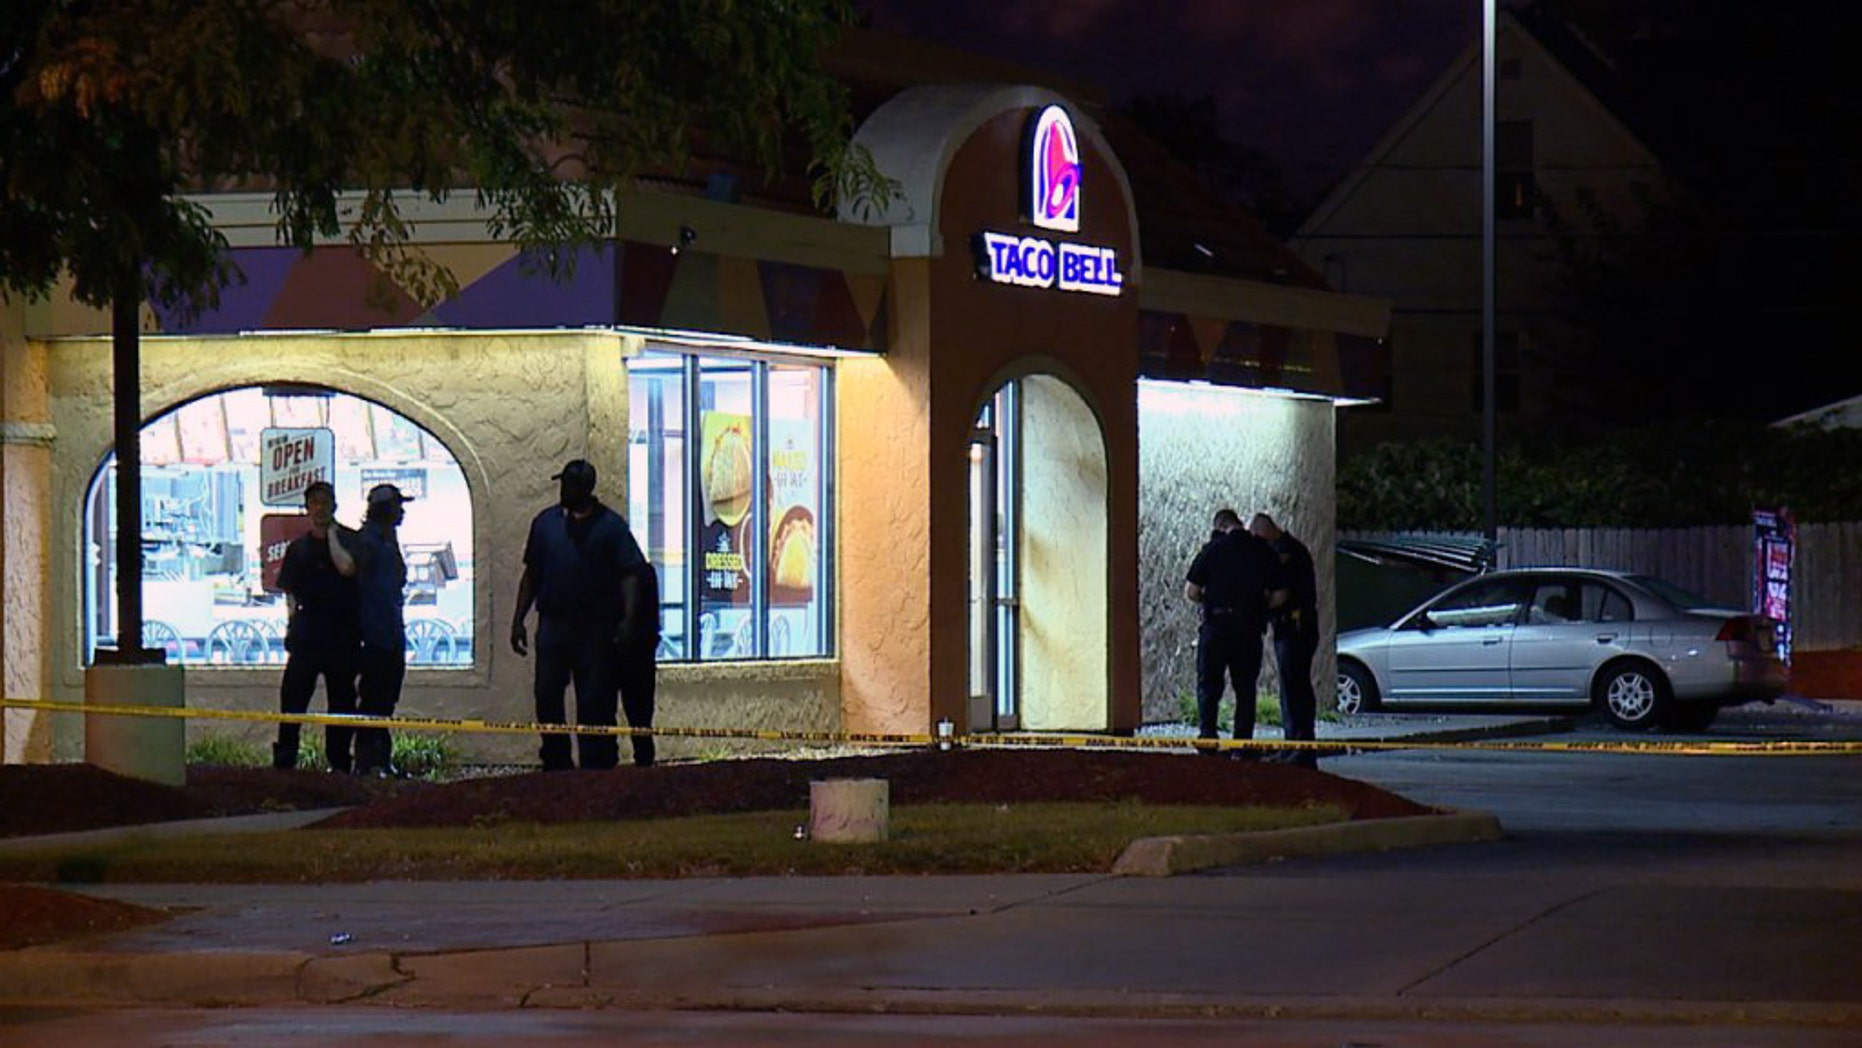 Cleveland Police respond to the Taco Bell after a would-be robber was shot and killed by employees